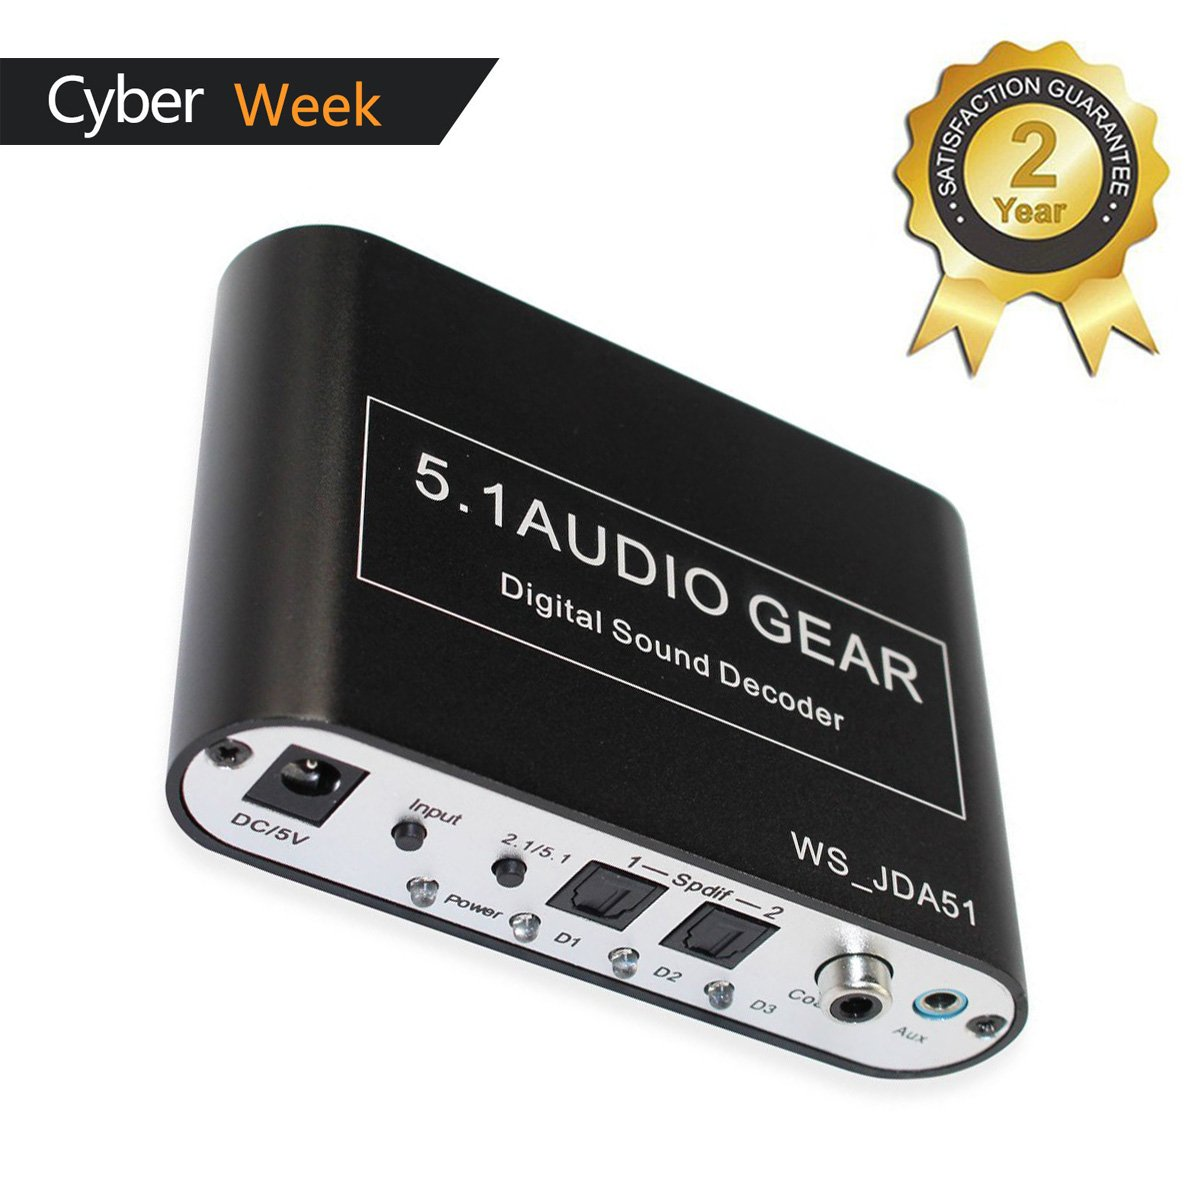 5.1 Audio Gear Digital Sound Decoder Converter - Optical SPDIF/ Coaxial AC3/DTS To 5.1Analog output - support DTS/AC-3/PCM for HD player Blu-ray DVD PS3 PS4 and Xbox 360 Xbox one